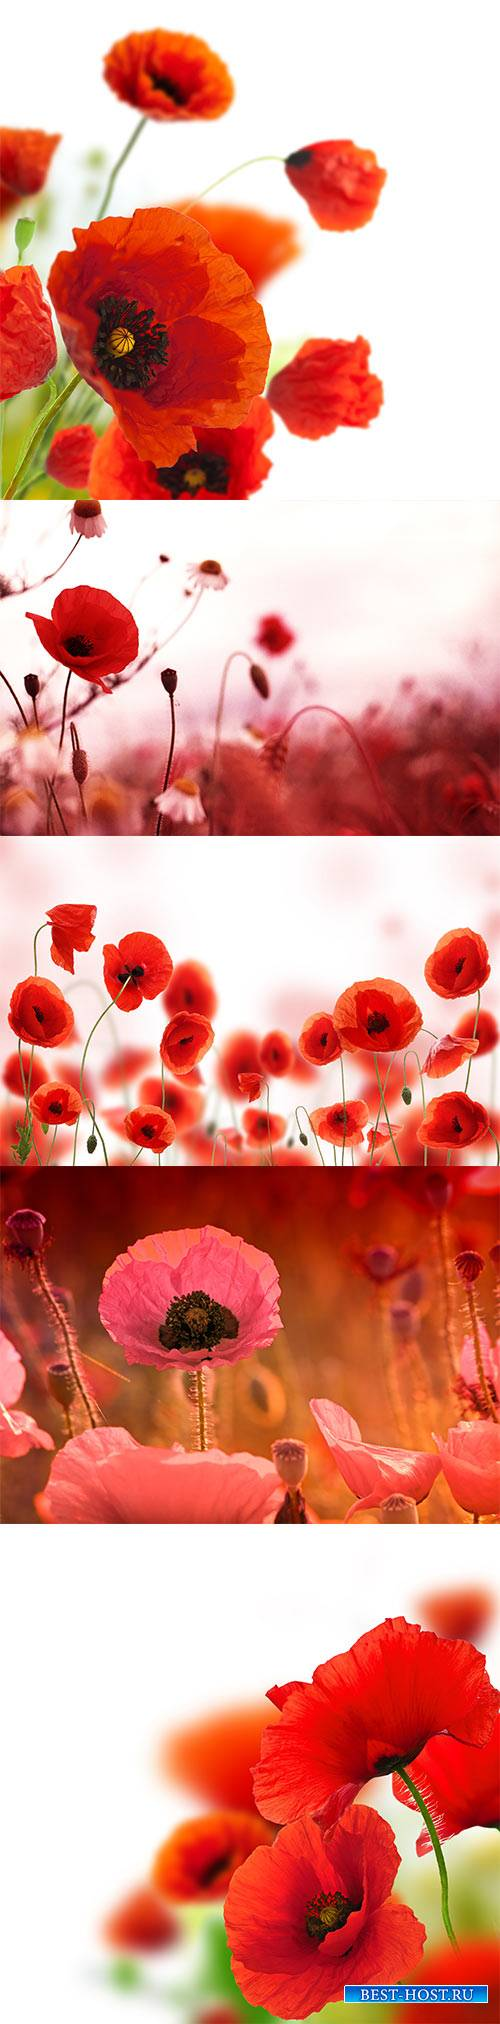 Poppies white background, green and red floral design